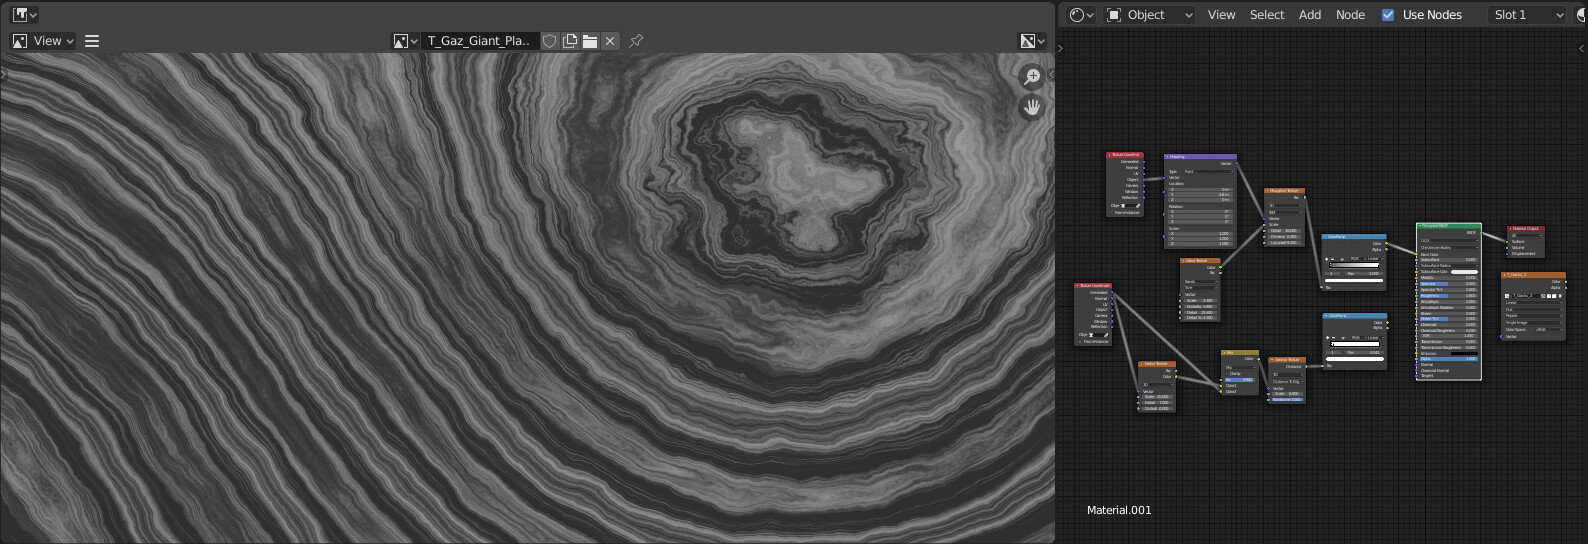 Texture Generator programmed in Blender for Texture Baking. Generates different Gas Giant textures and cracks.